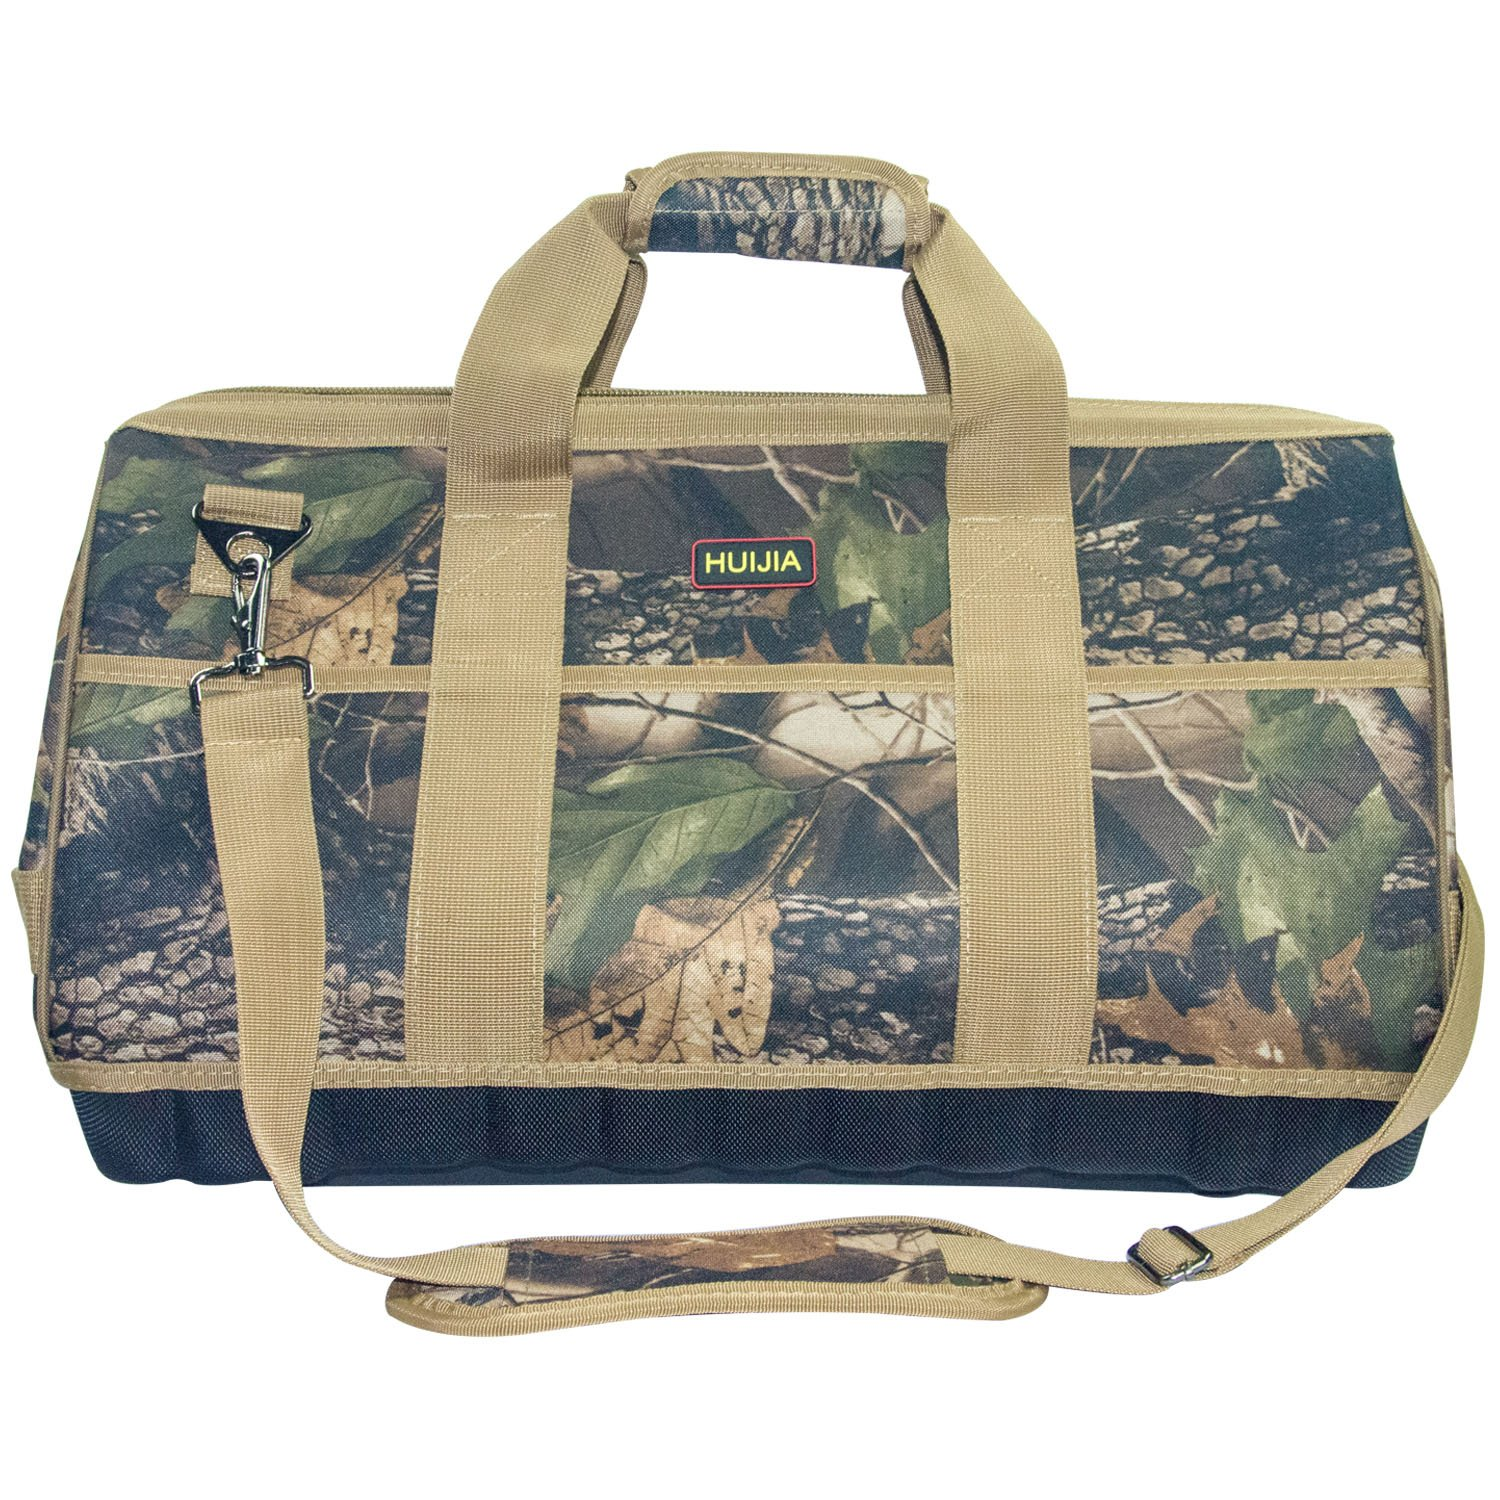 Tough As Nails Tool Bag,eavy-Duty 600D Canvas, Rubber Feet(S:11''X10.6''X7.1'')